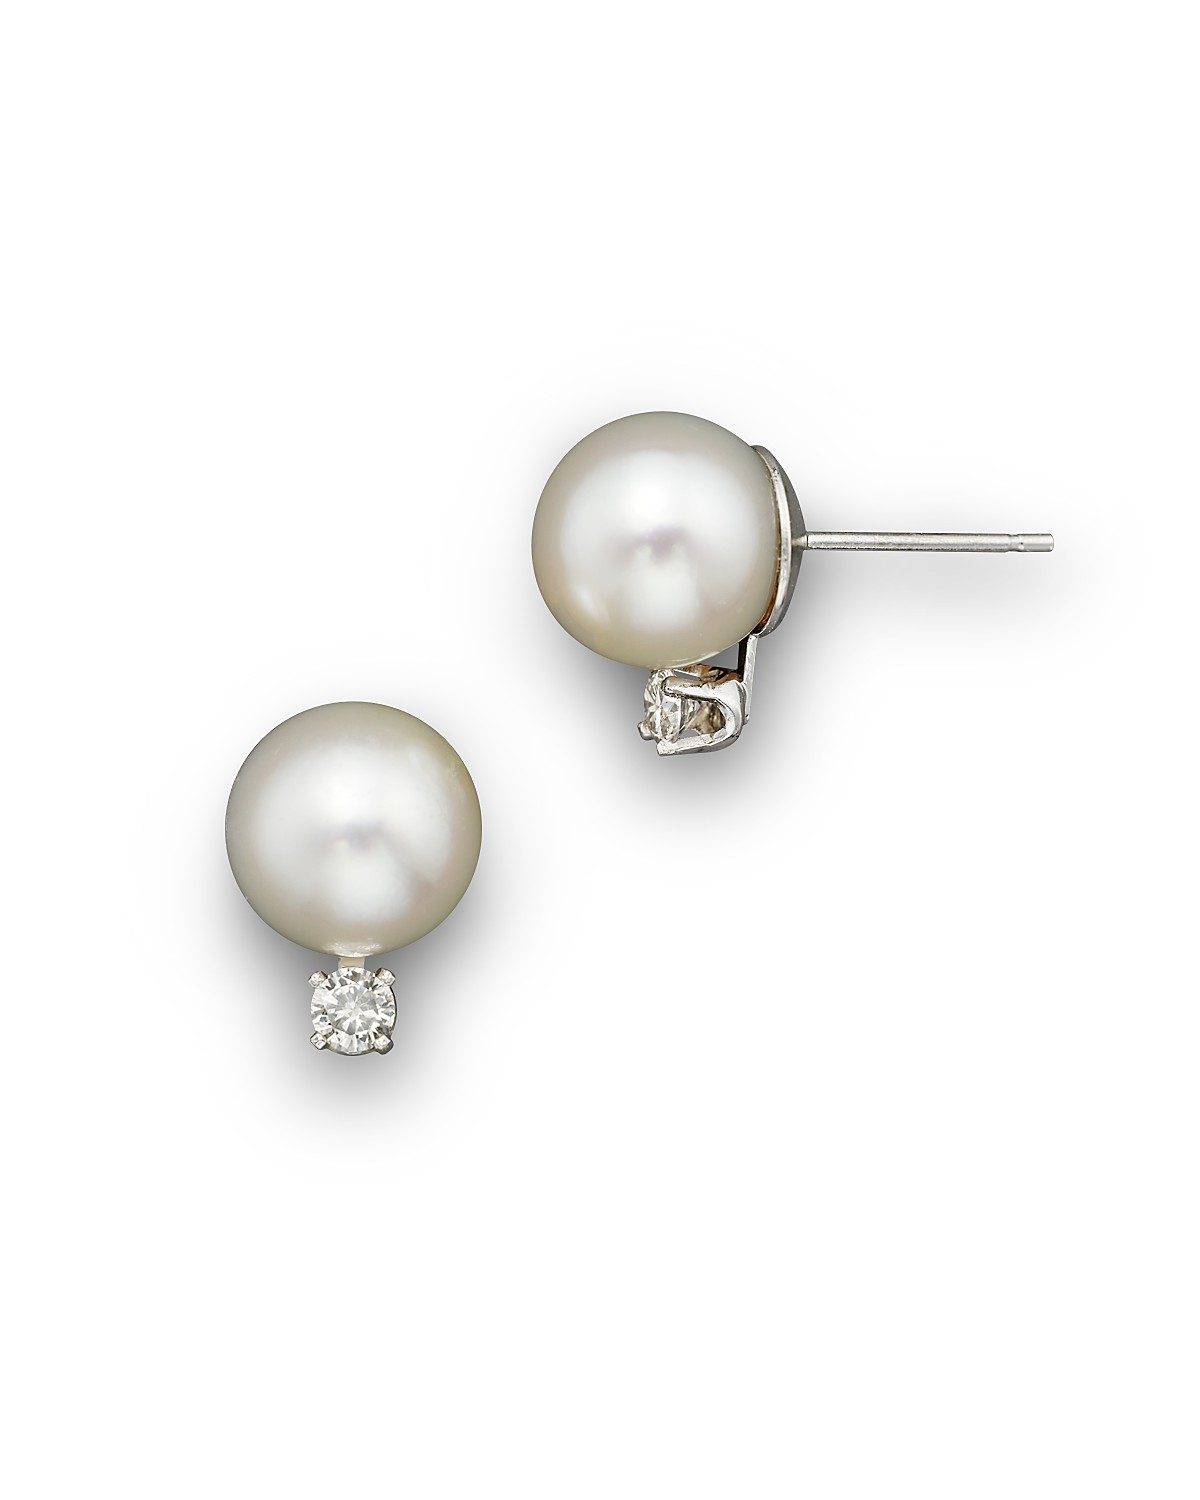 freshwater earrings white stud pearl com let styleskier kaioahl cultured you in notice gold everyone